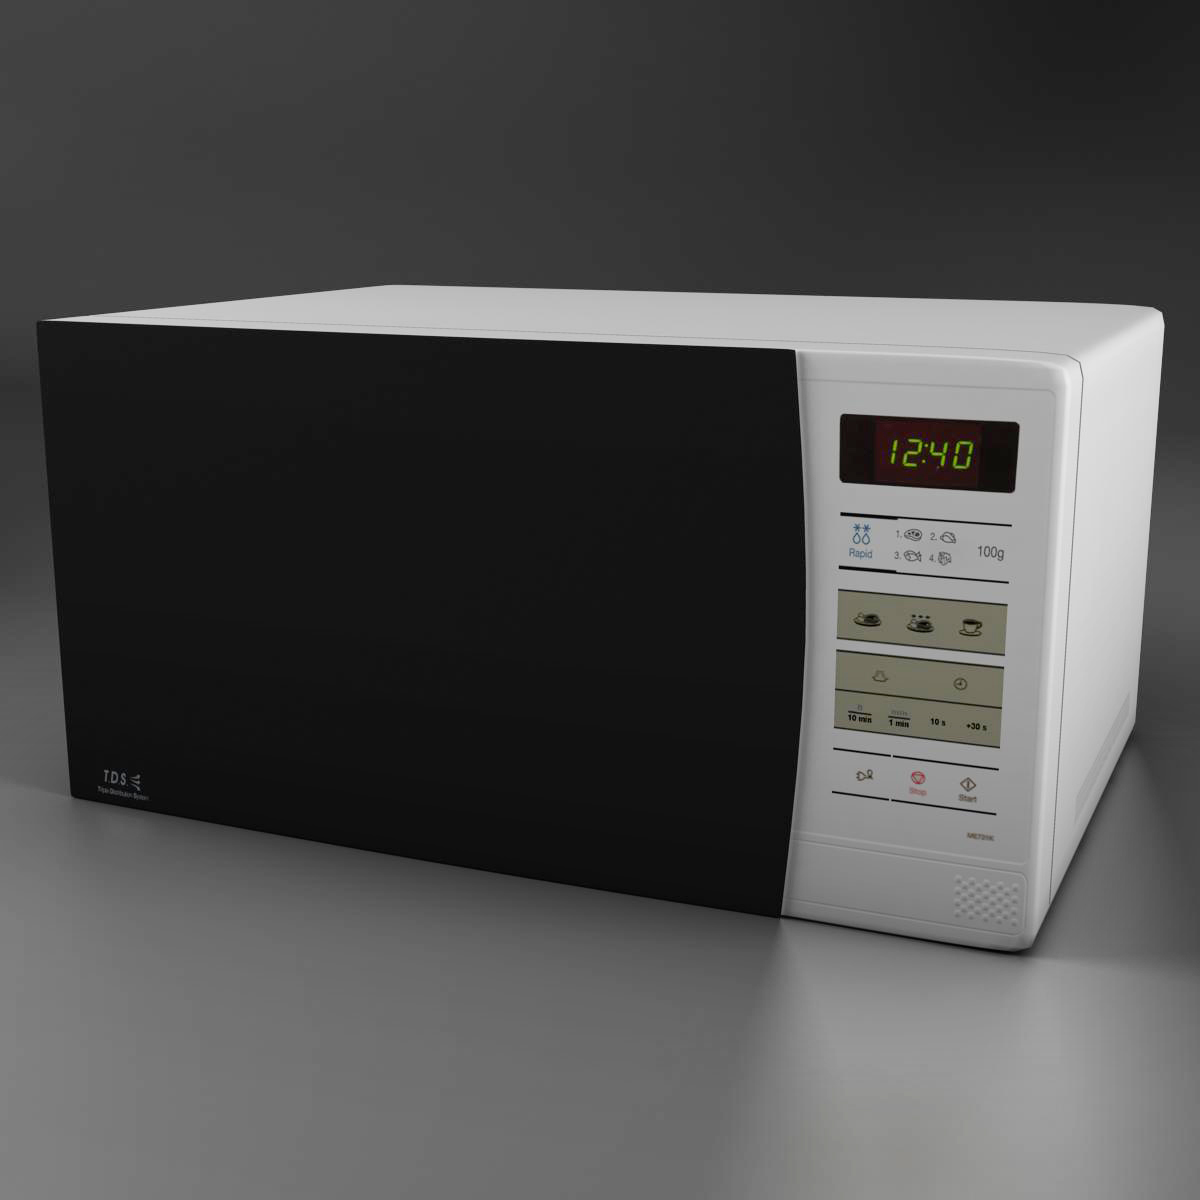 microwave 3d model 3ds max fbx ma mb obj 158917